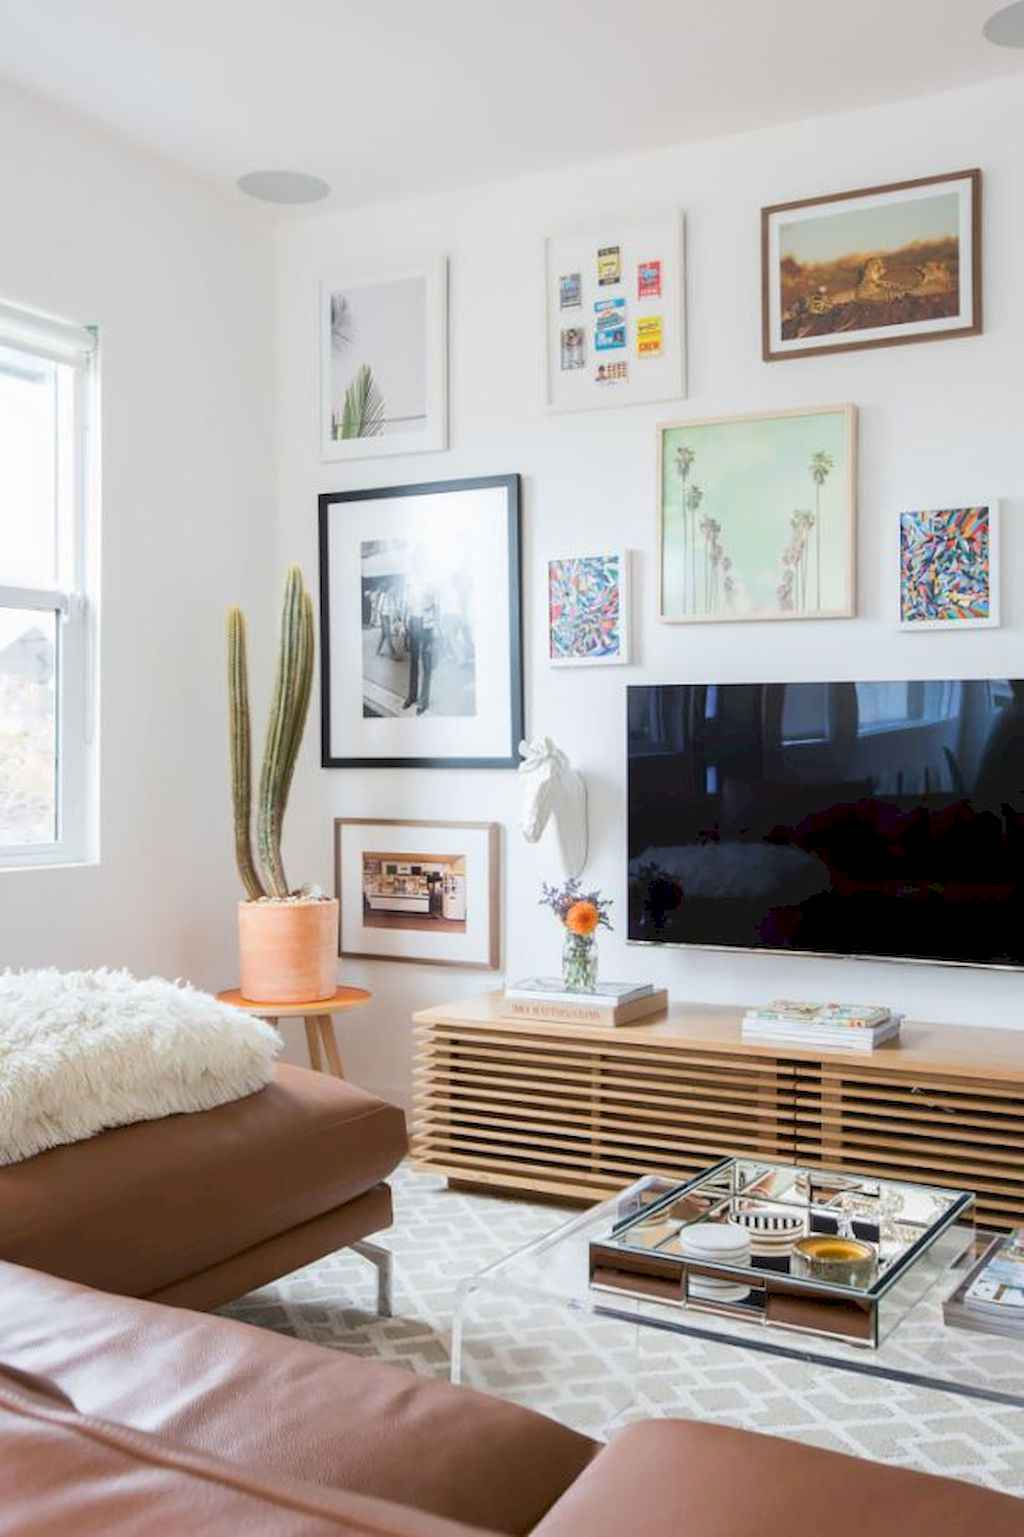 Couples first apartment decorating ideas (110)